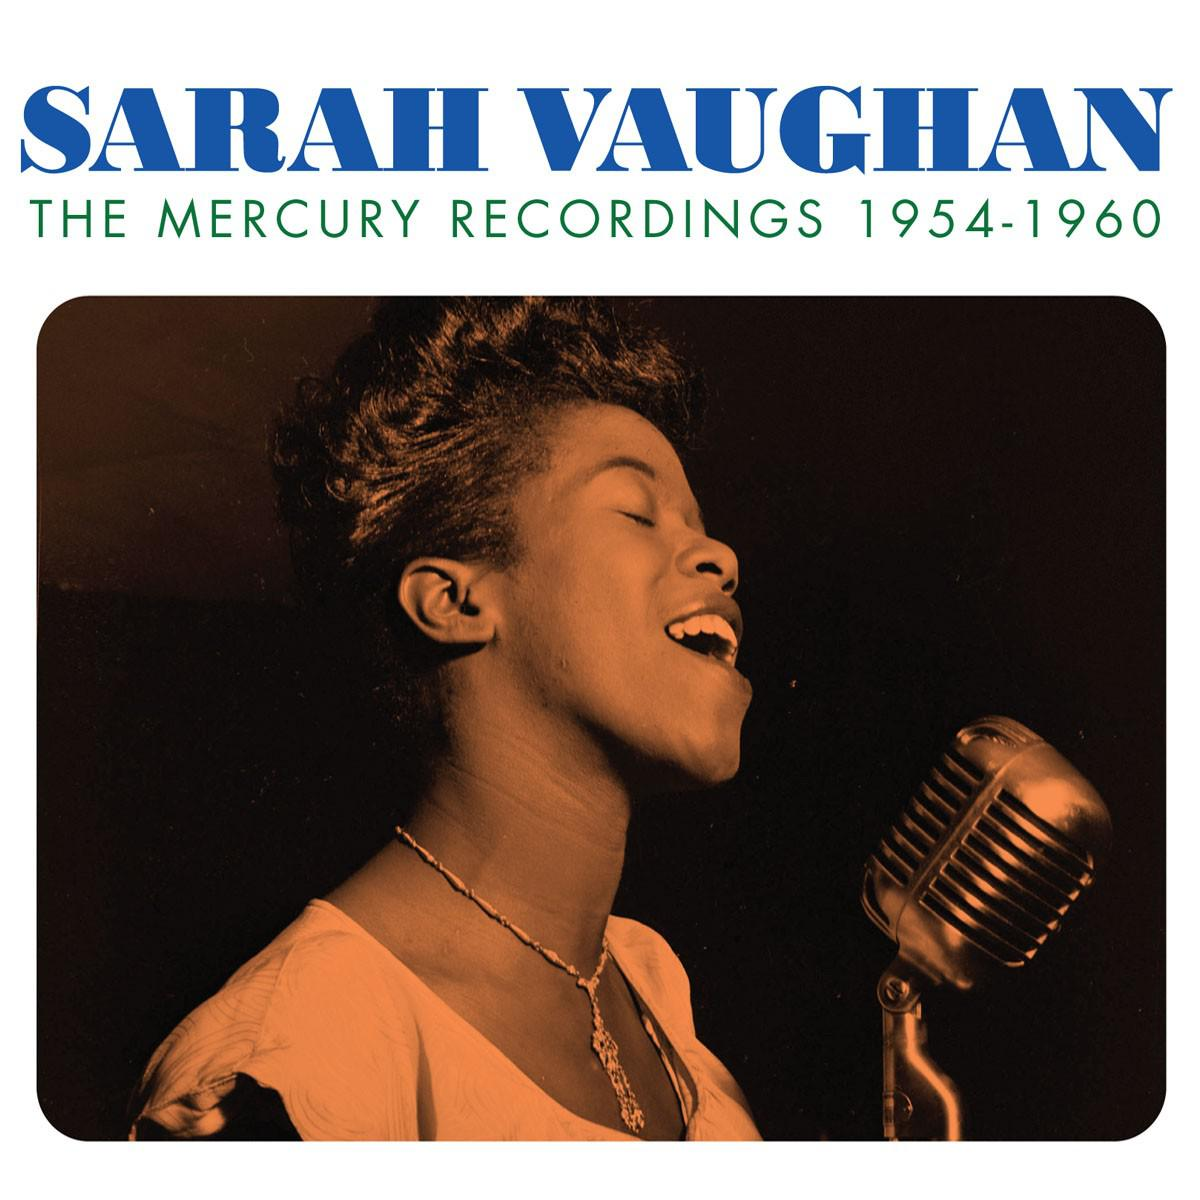 Sarah Vaughan - The Mercury Recordings 1954-1960 (2014)